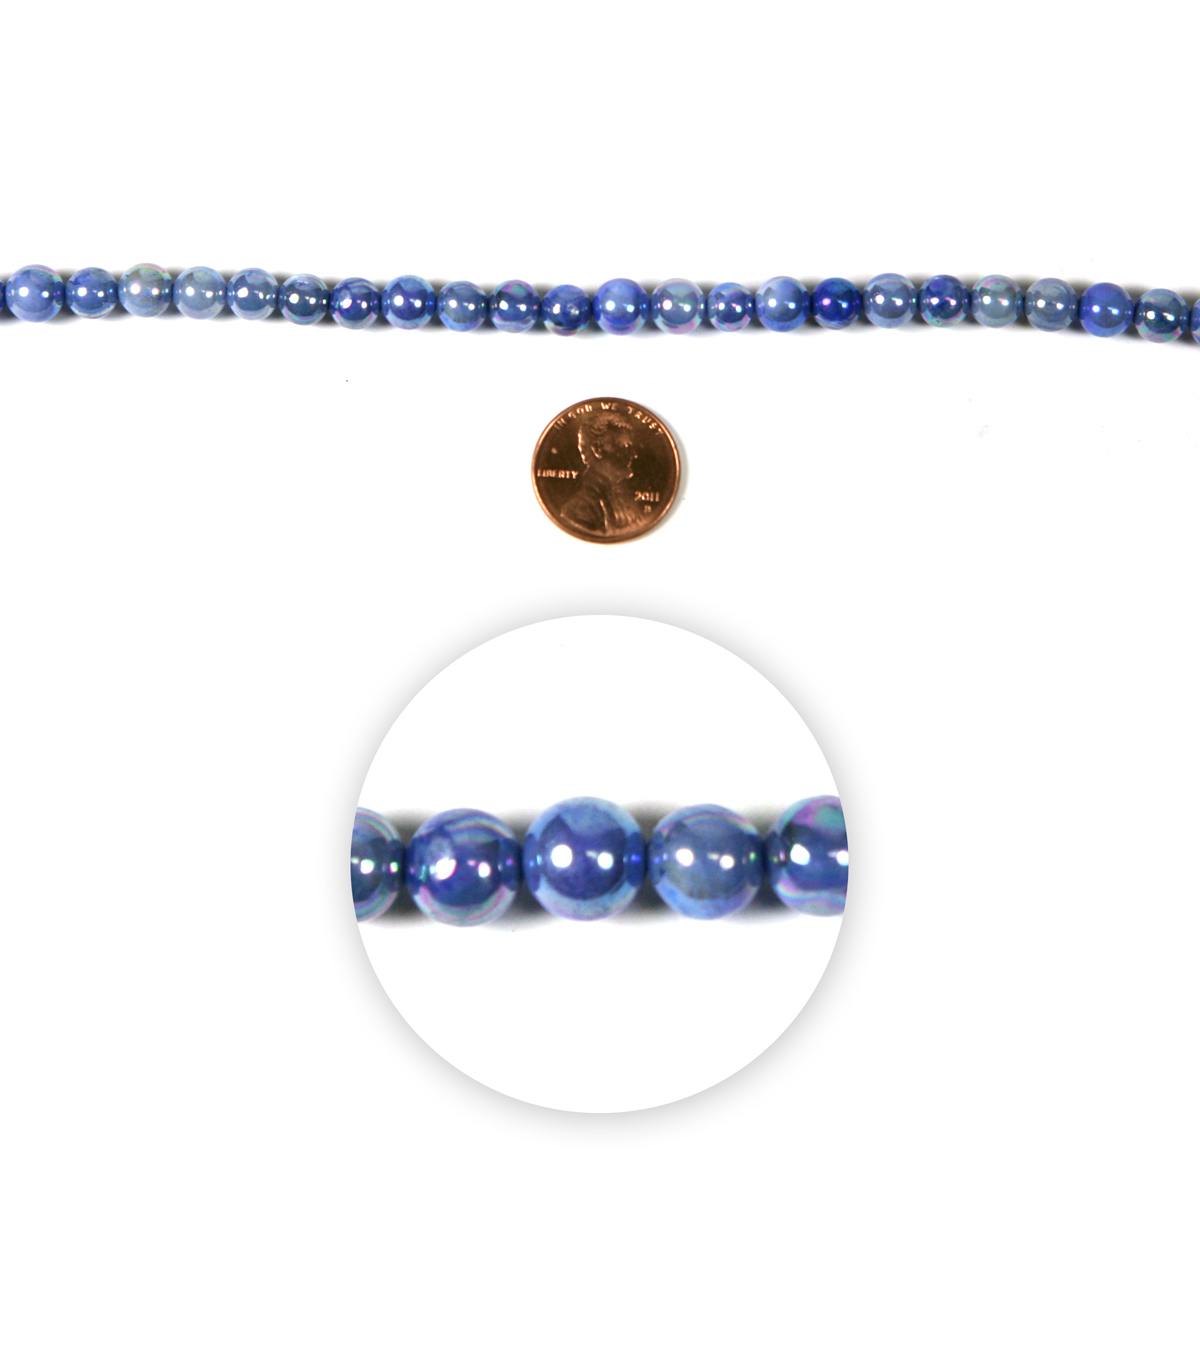 Blue Moon Strung Shell Beads,Round,Light Blue AB